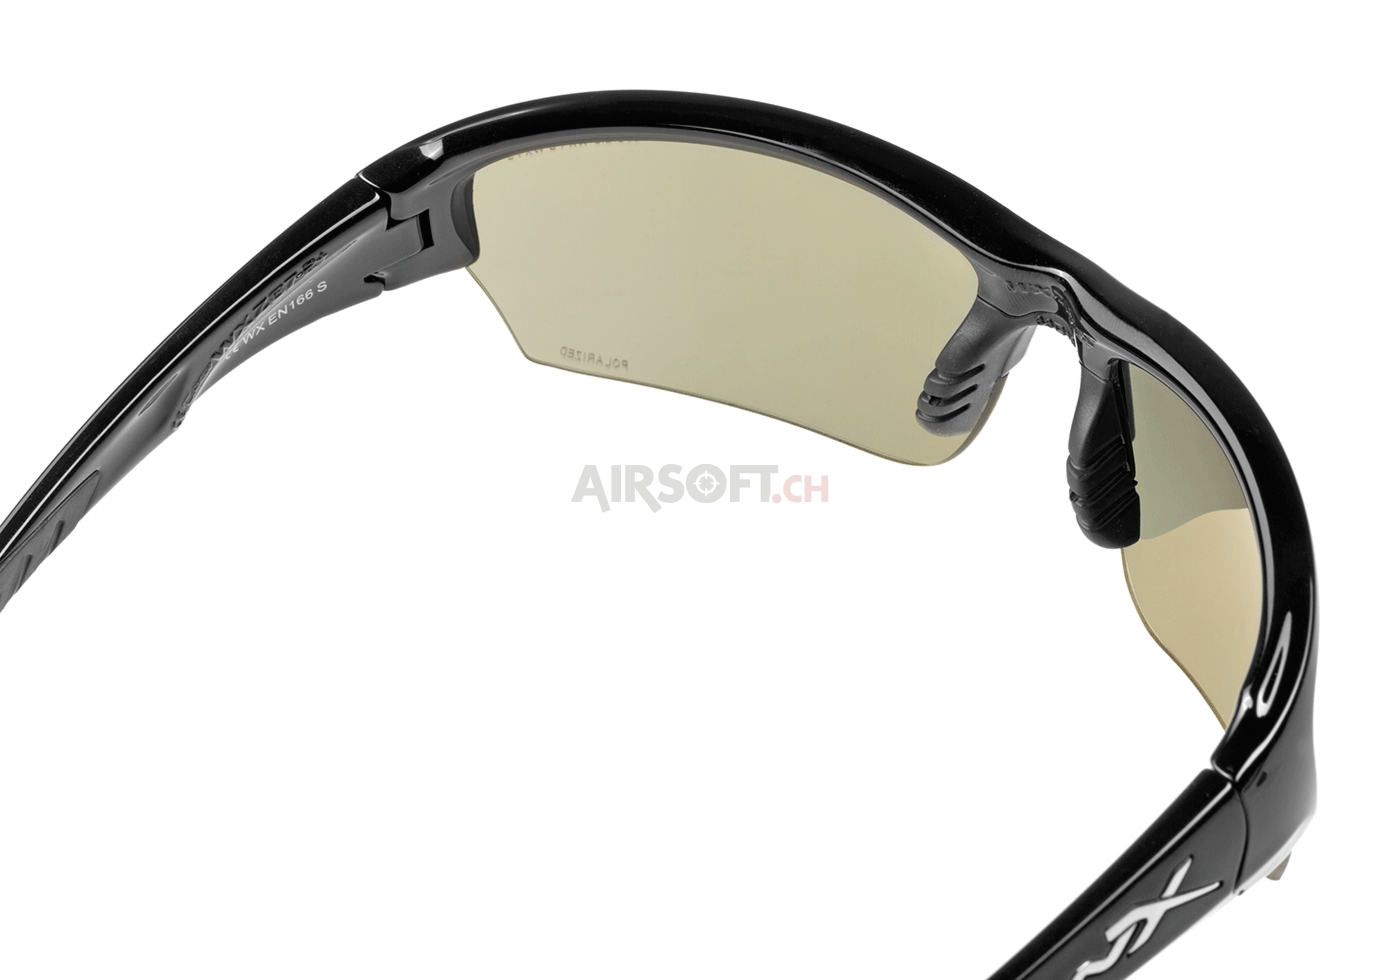 548d74381ed56 WX Saint Polarized Black (Wiley X) - Glasses Polarized - Eyewear -  Protective Equipment - airsoft.ch Online shop